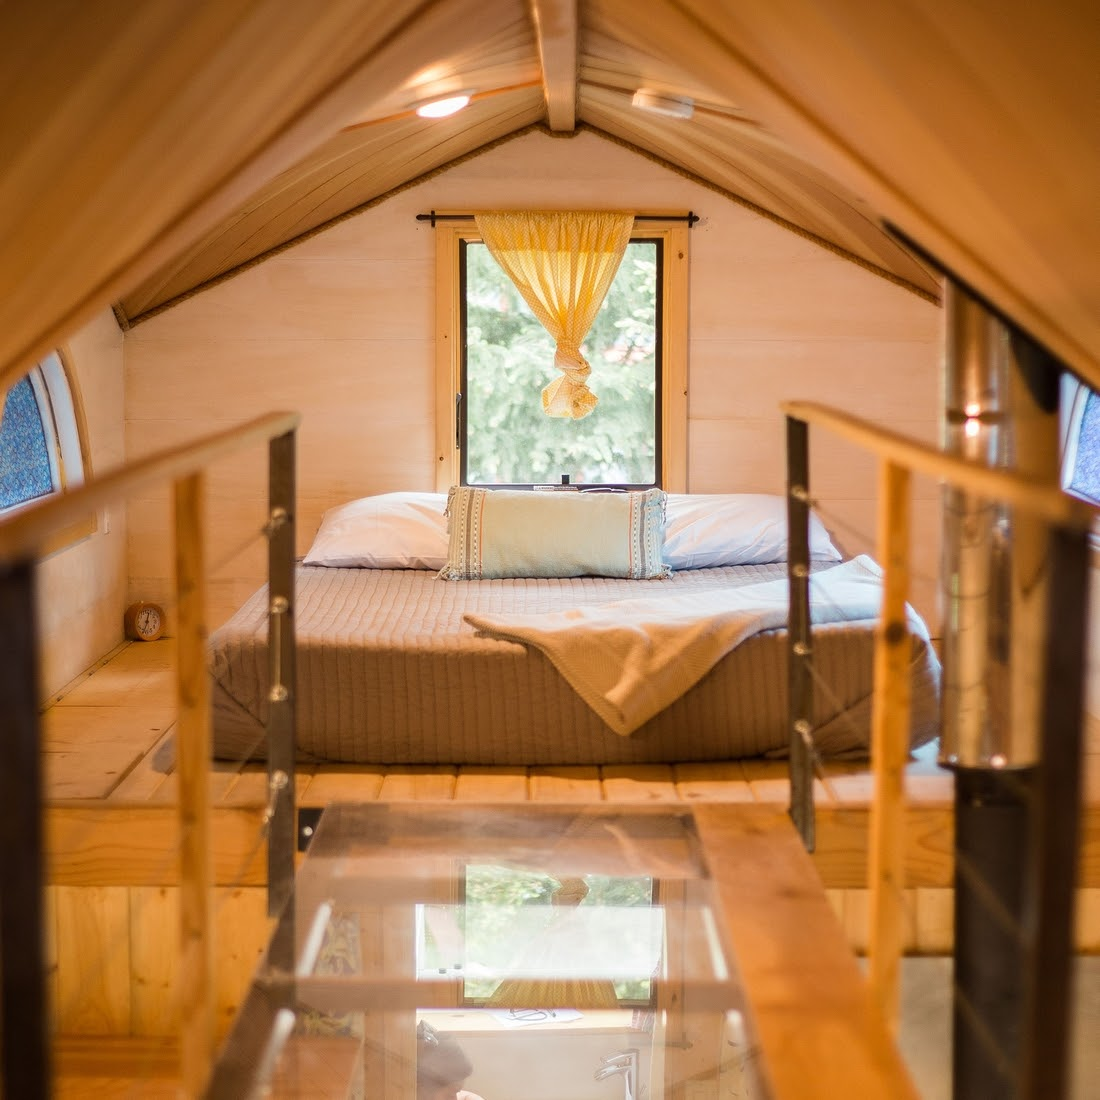 01-Master-Bedroom-WeeCasa-The-Pequod-Tiny-House-Architecture-www-designstack-co